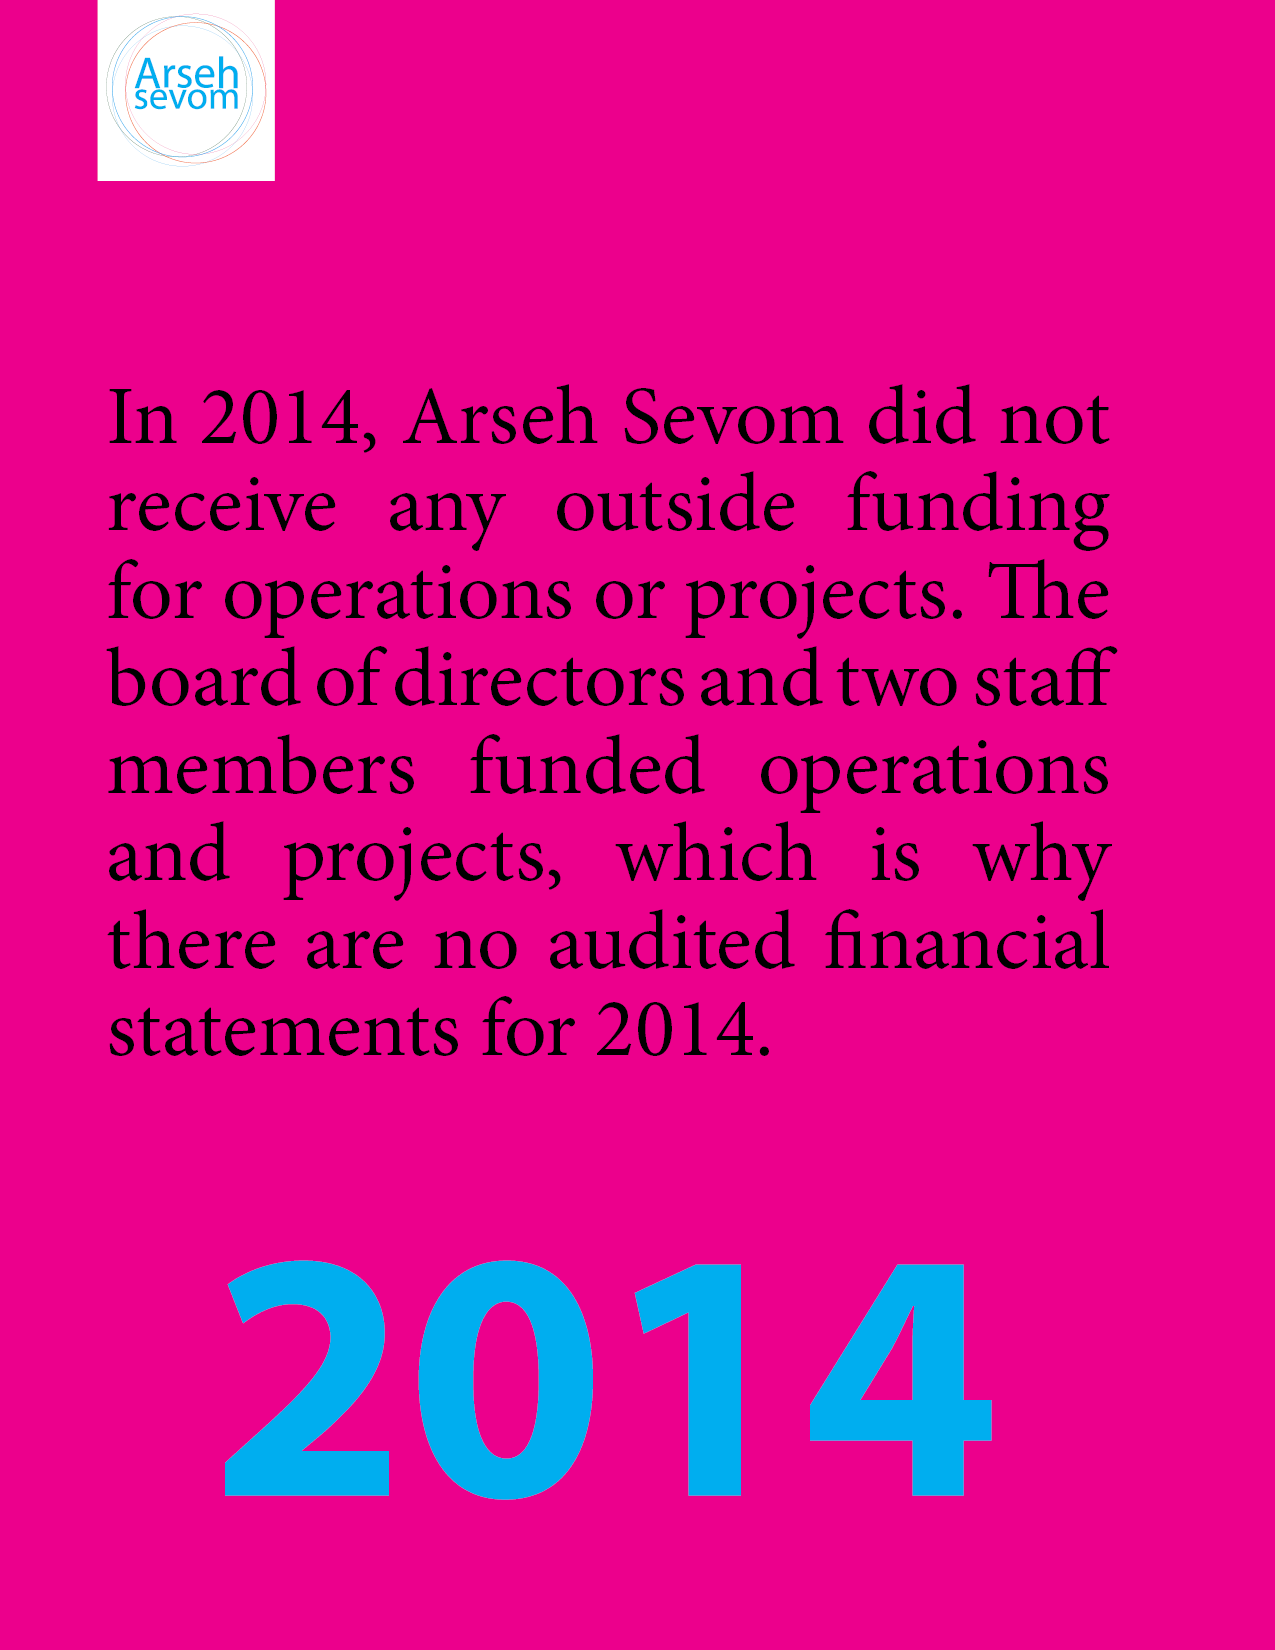 """""""In 2014, Arseh Sevom did not receive any outside funding for operations or projects. The board of directors and two staff members funded operations and projects, which is why there are no audited financial statements for 2014"""""""